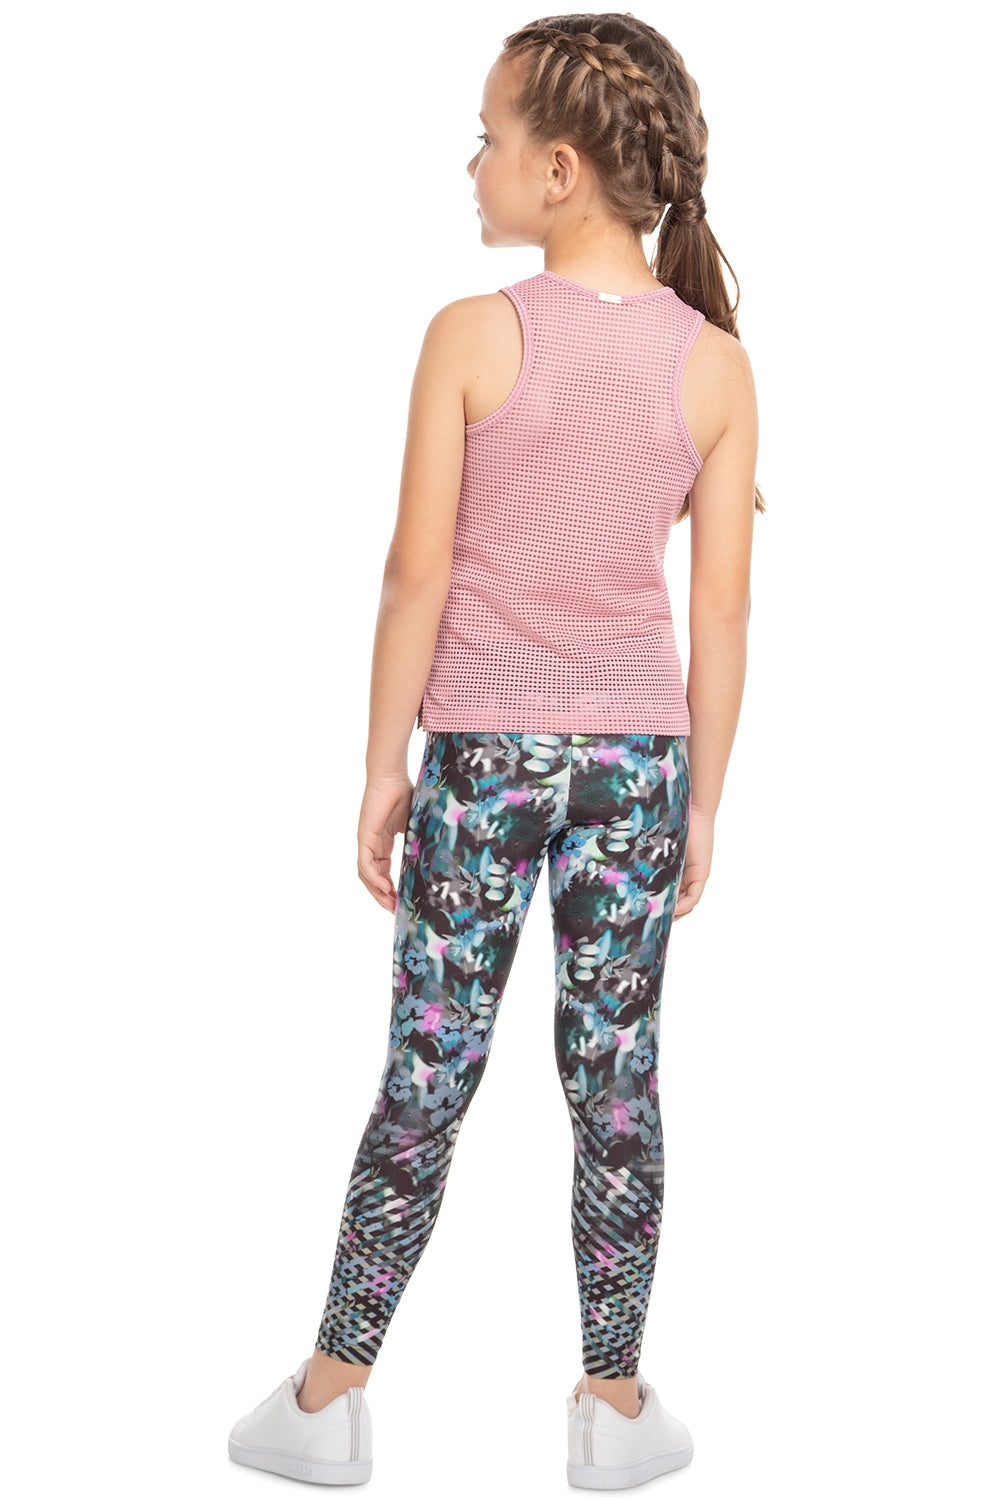 Floral View Kids Legging 2